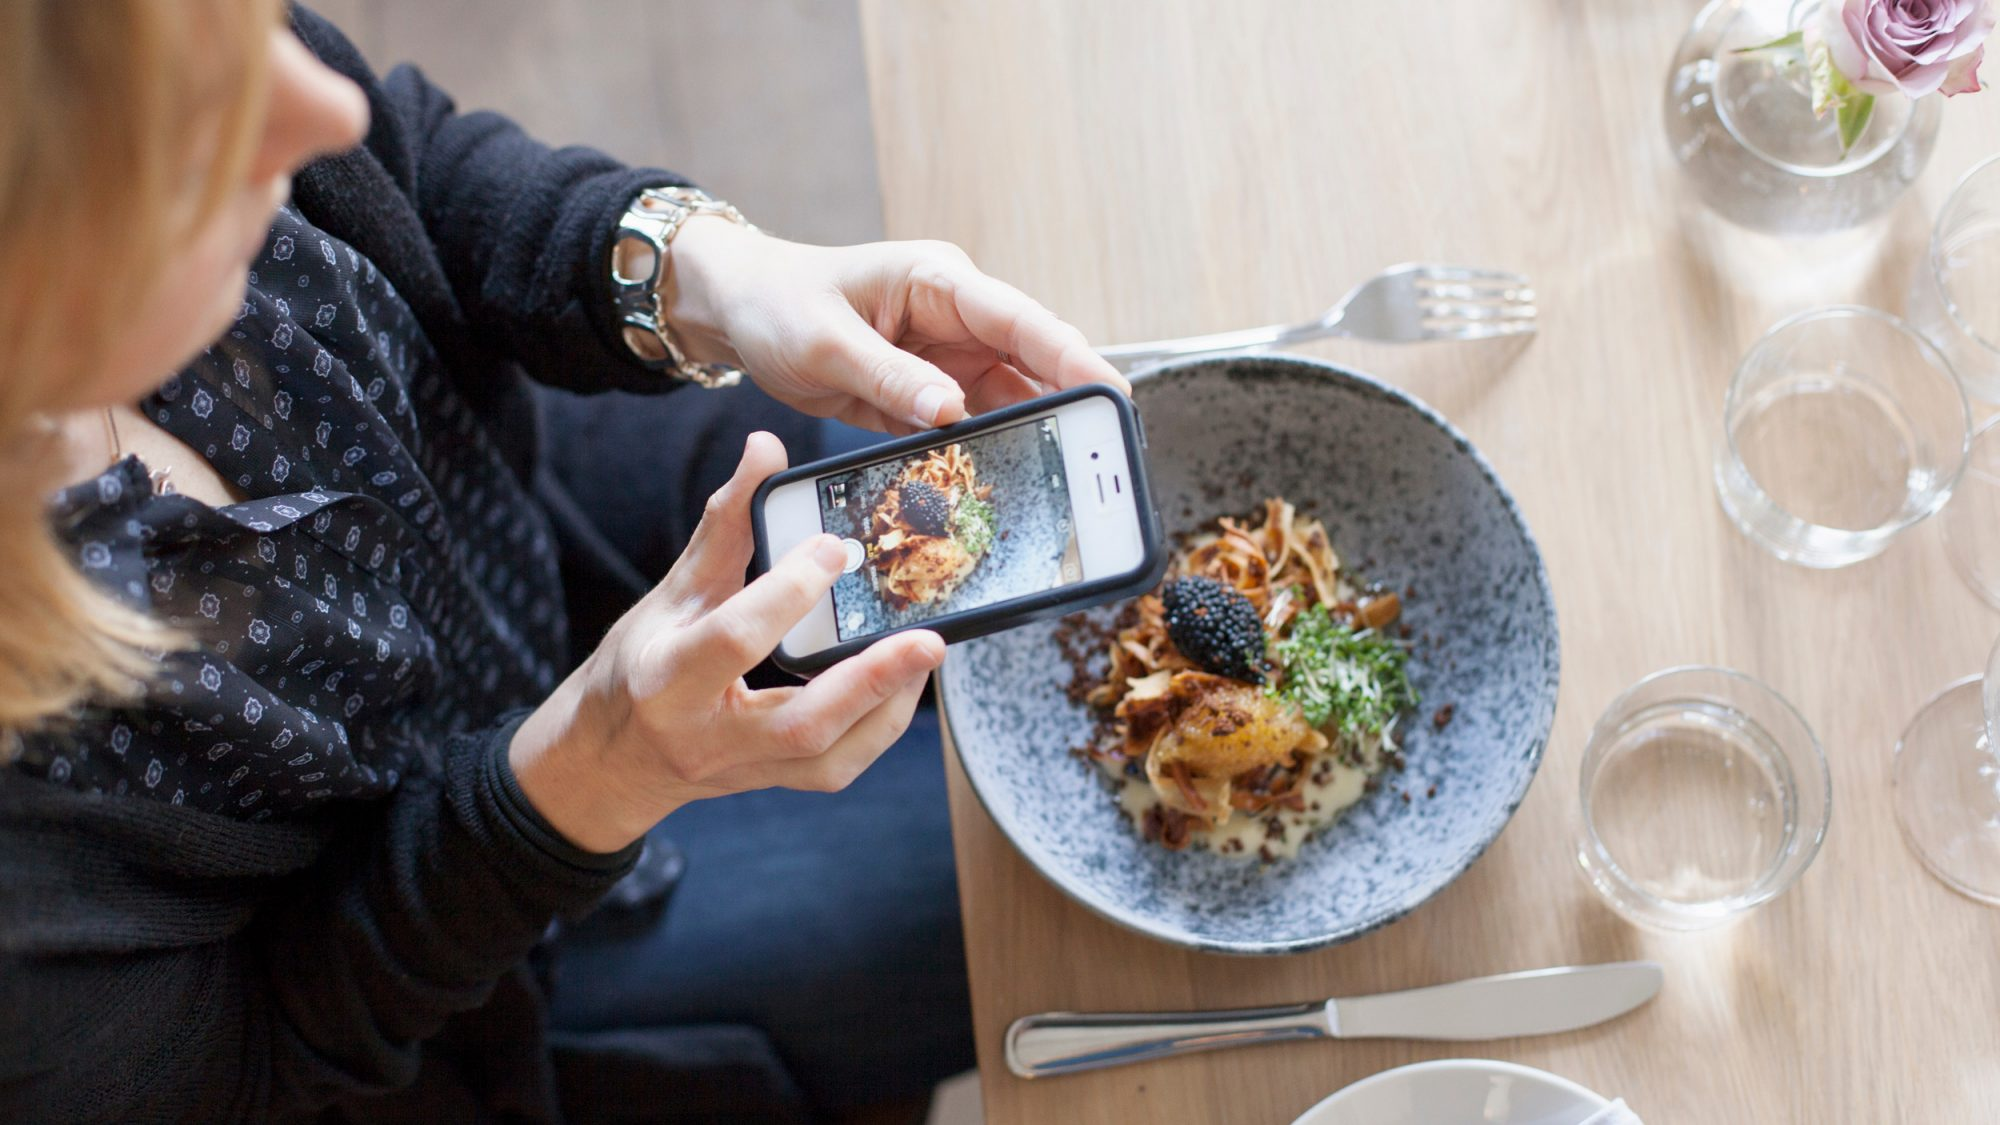 Feed Hungry People by Deleting Your Instagram Pics